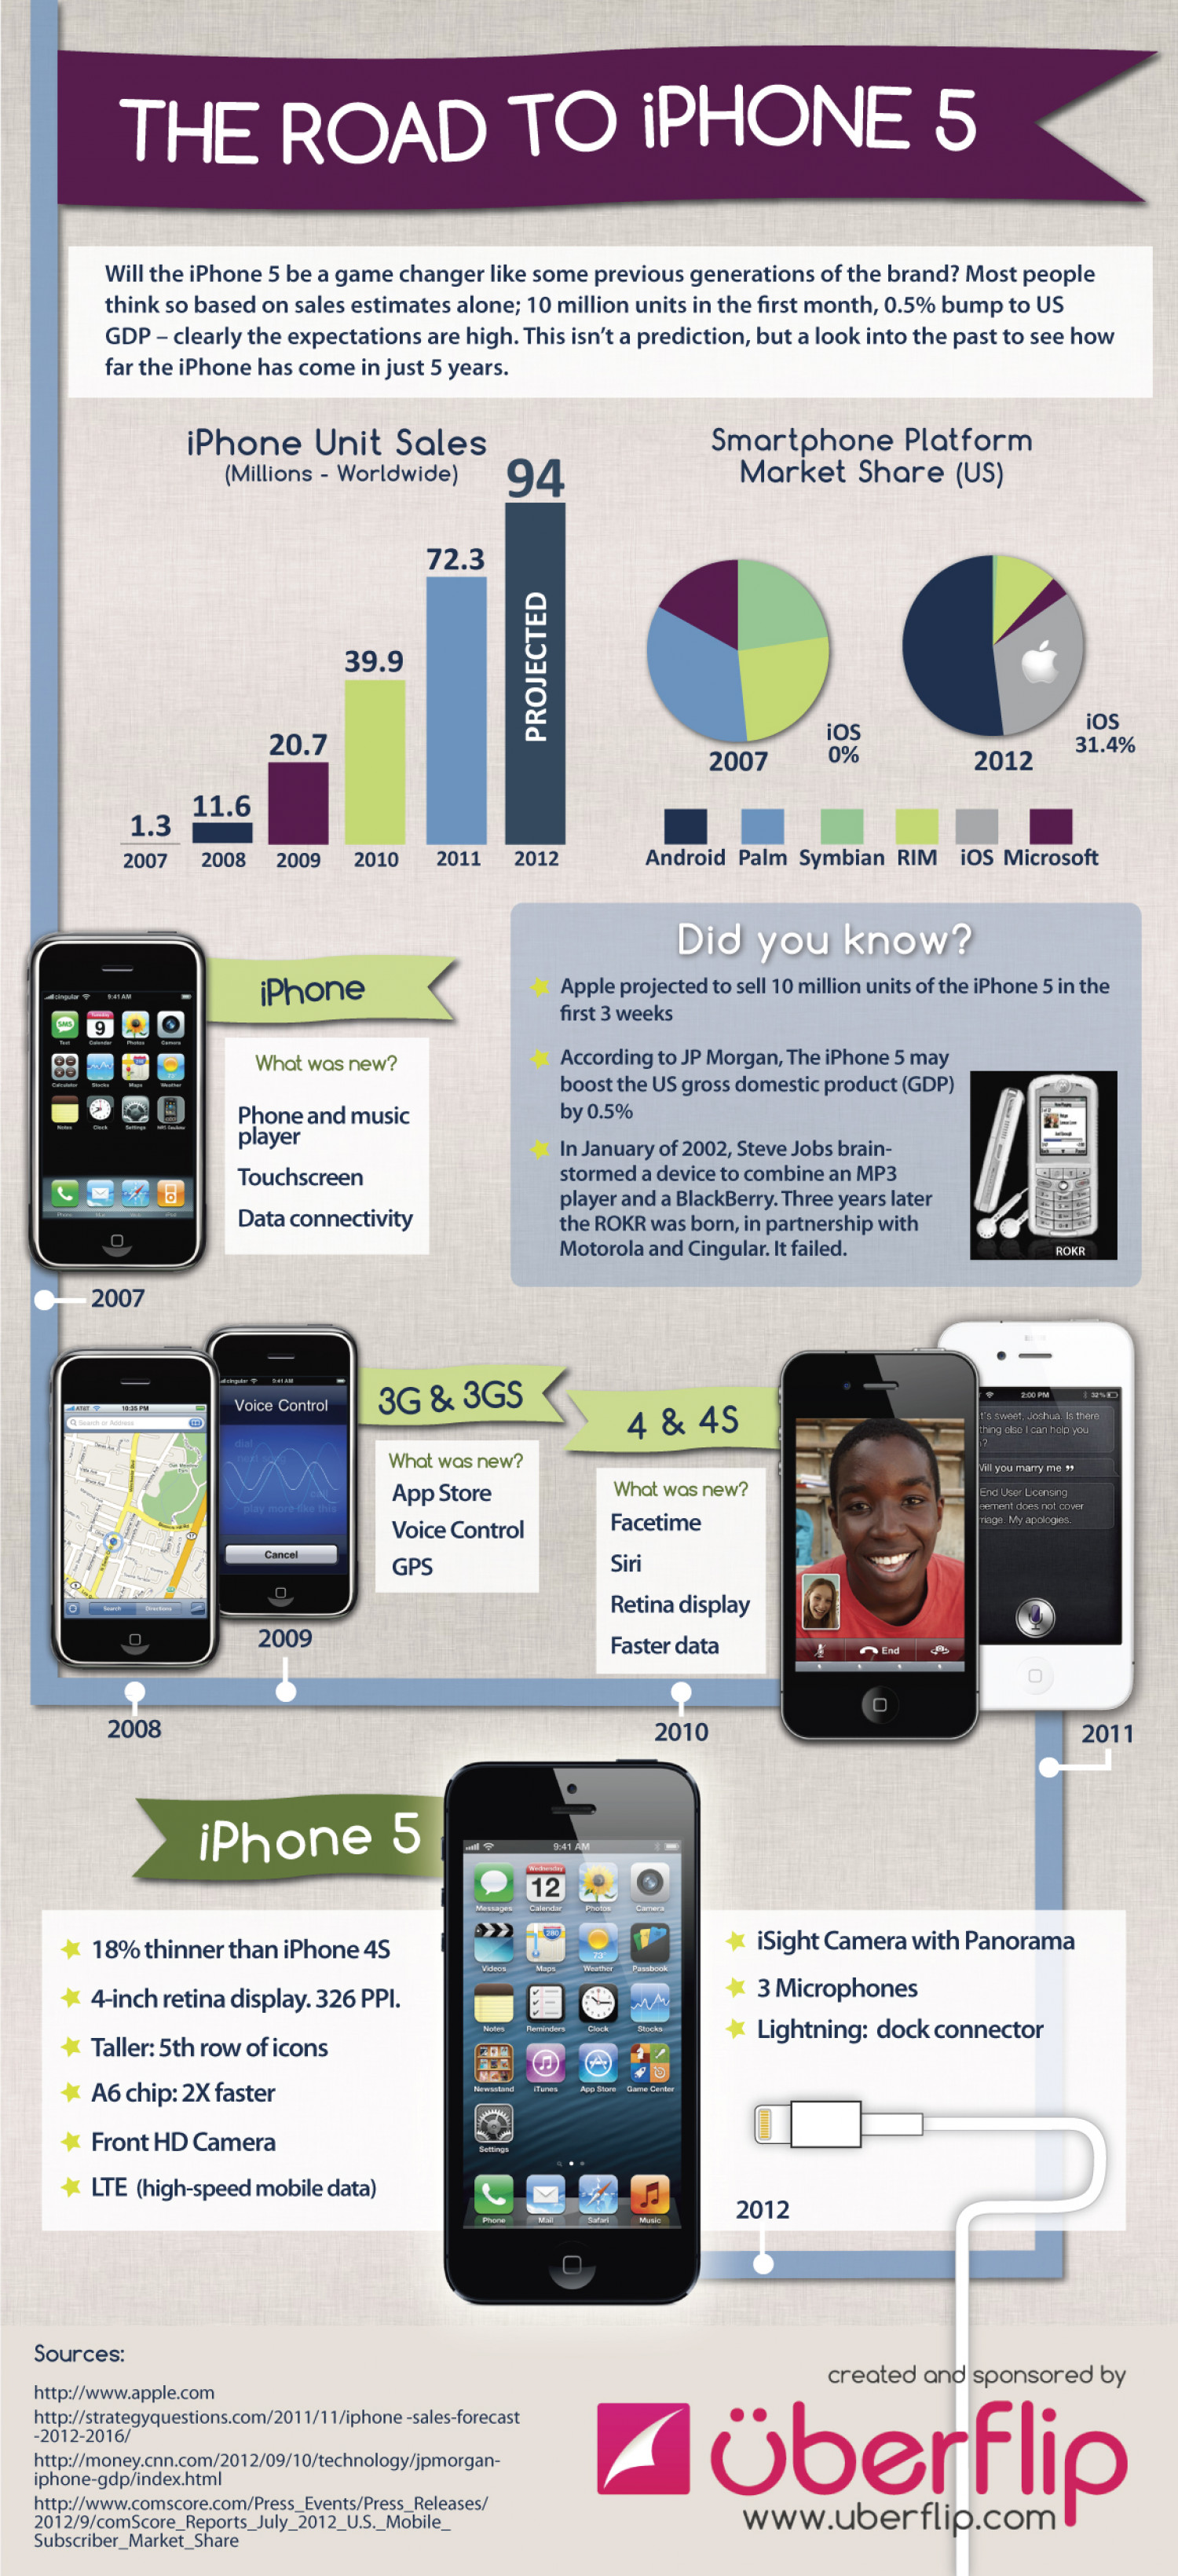 The Road to iPhone 5 Infographic